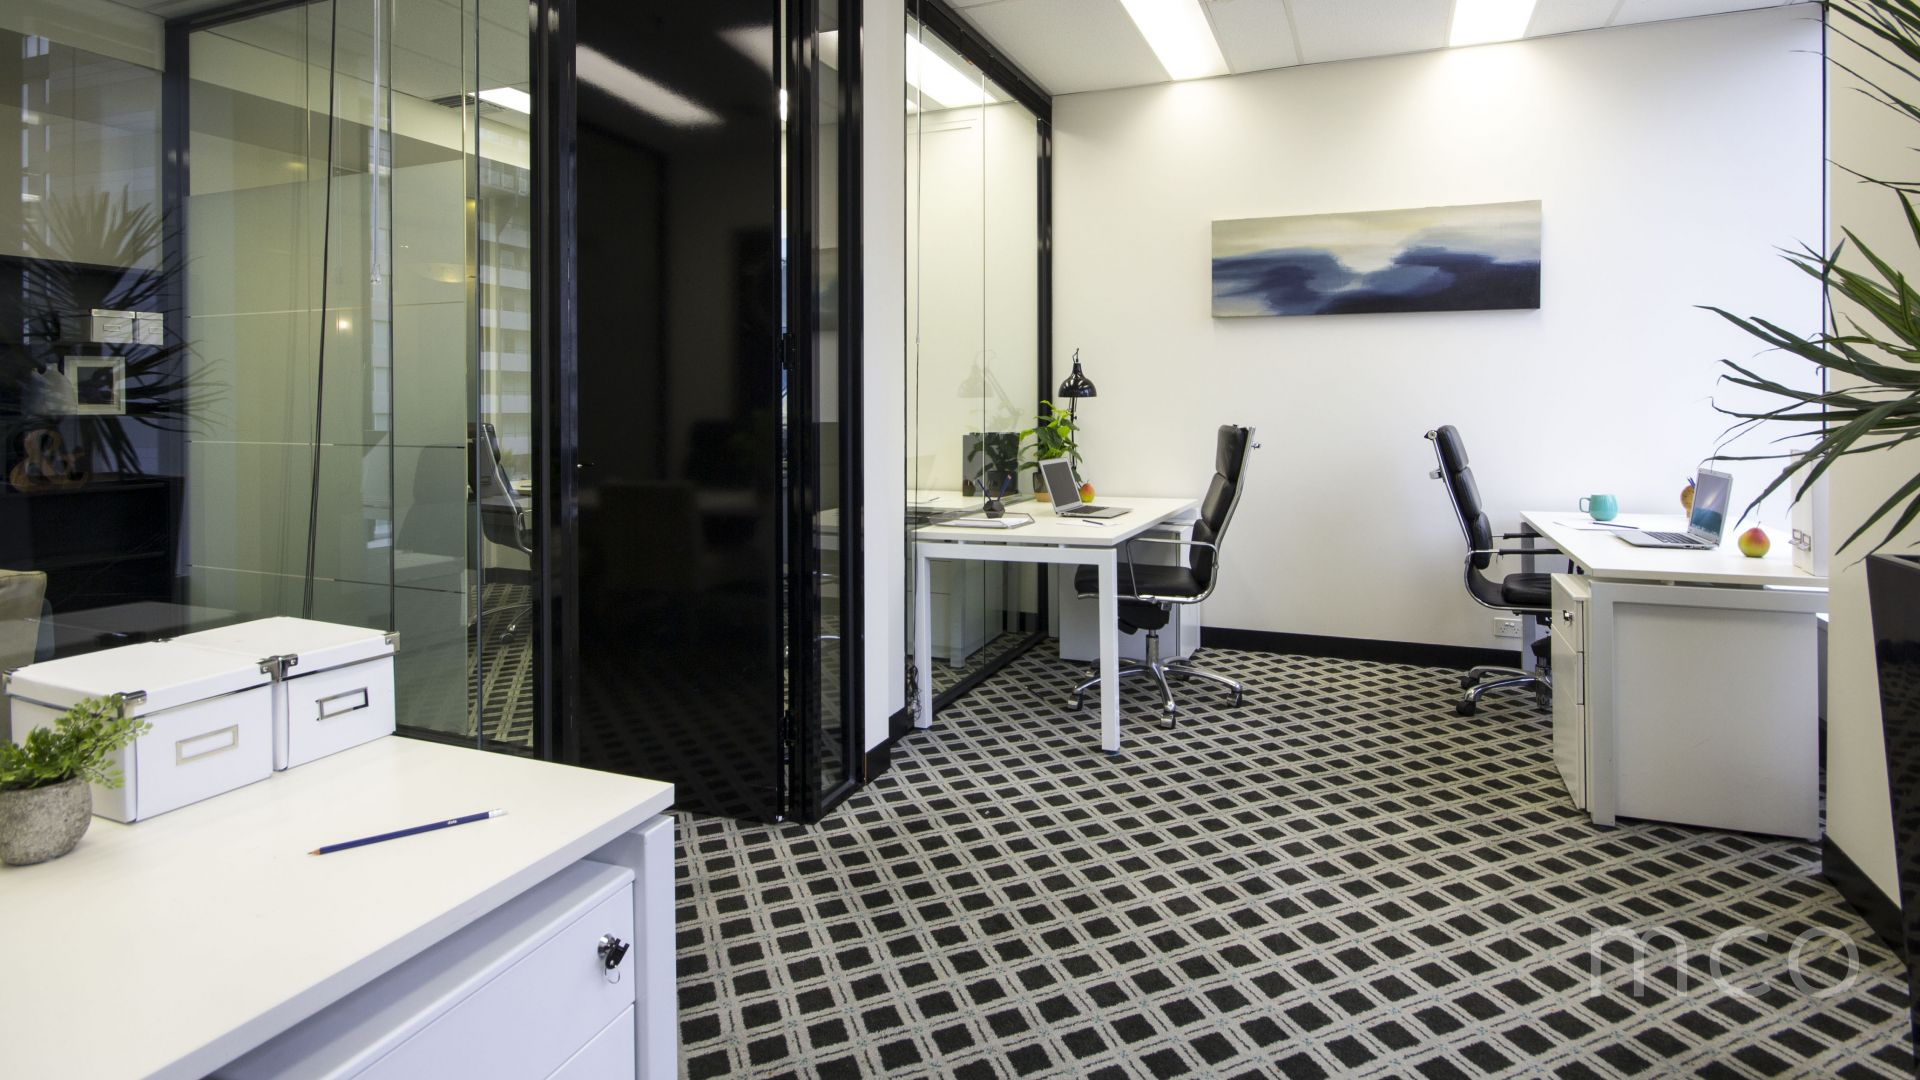 Occupy this newly refurbished office at Melbourne's iconic St Kilda Rd Towers